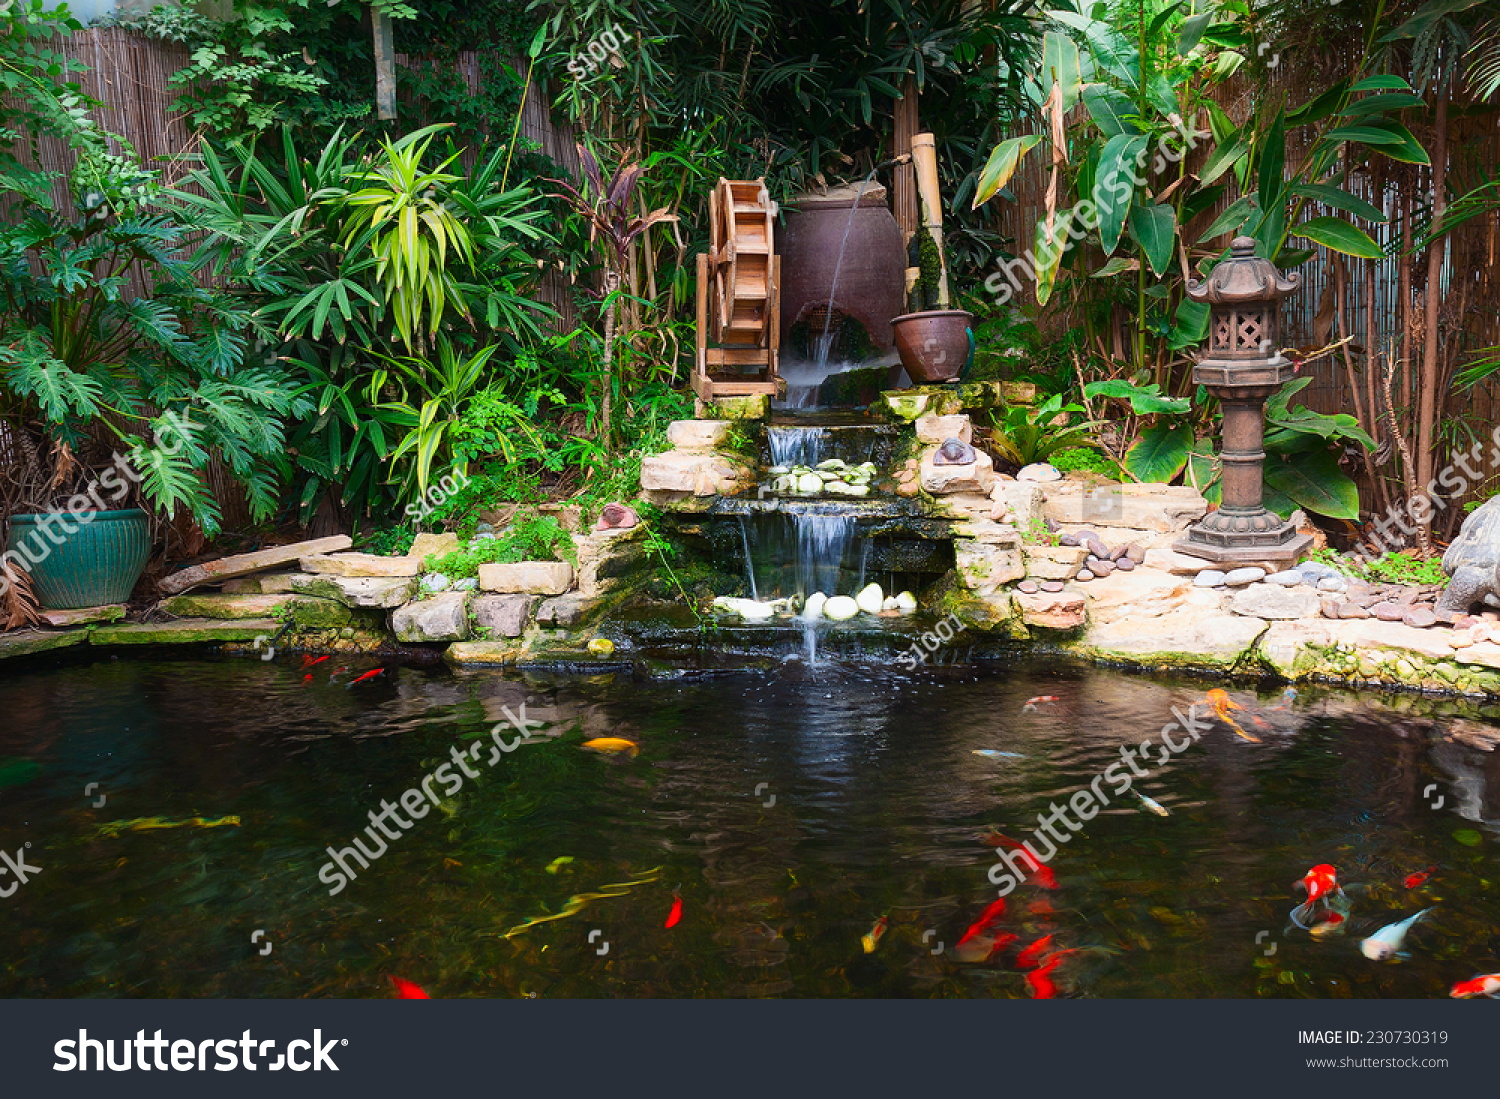 Natural decorative pond with fountain and gold fish stock for Decorative pond fish